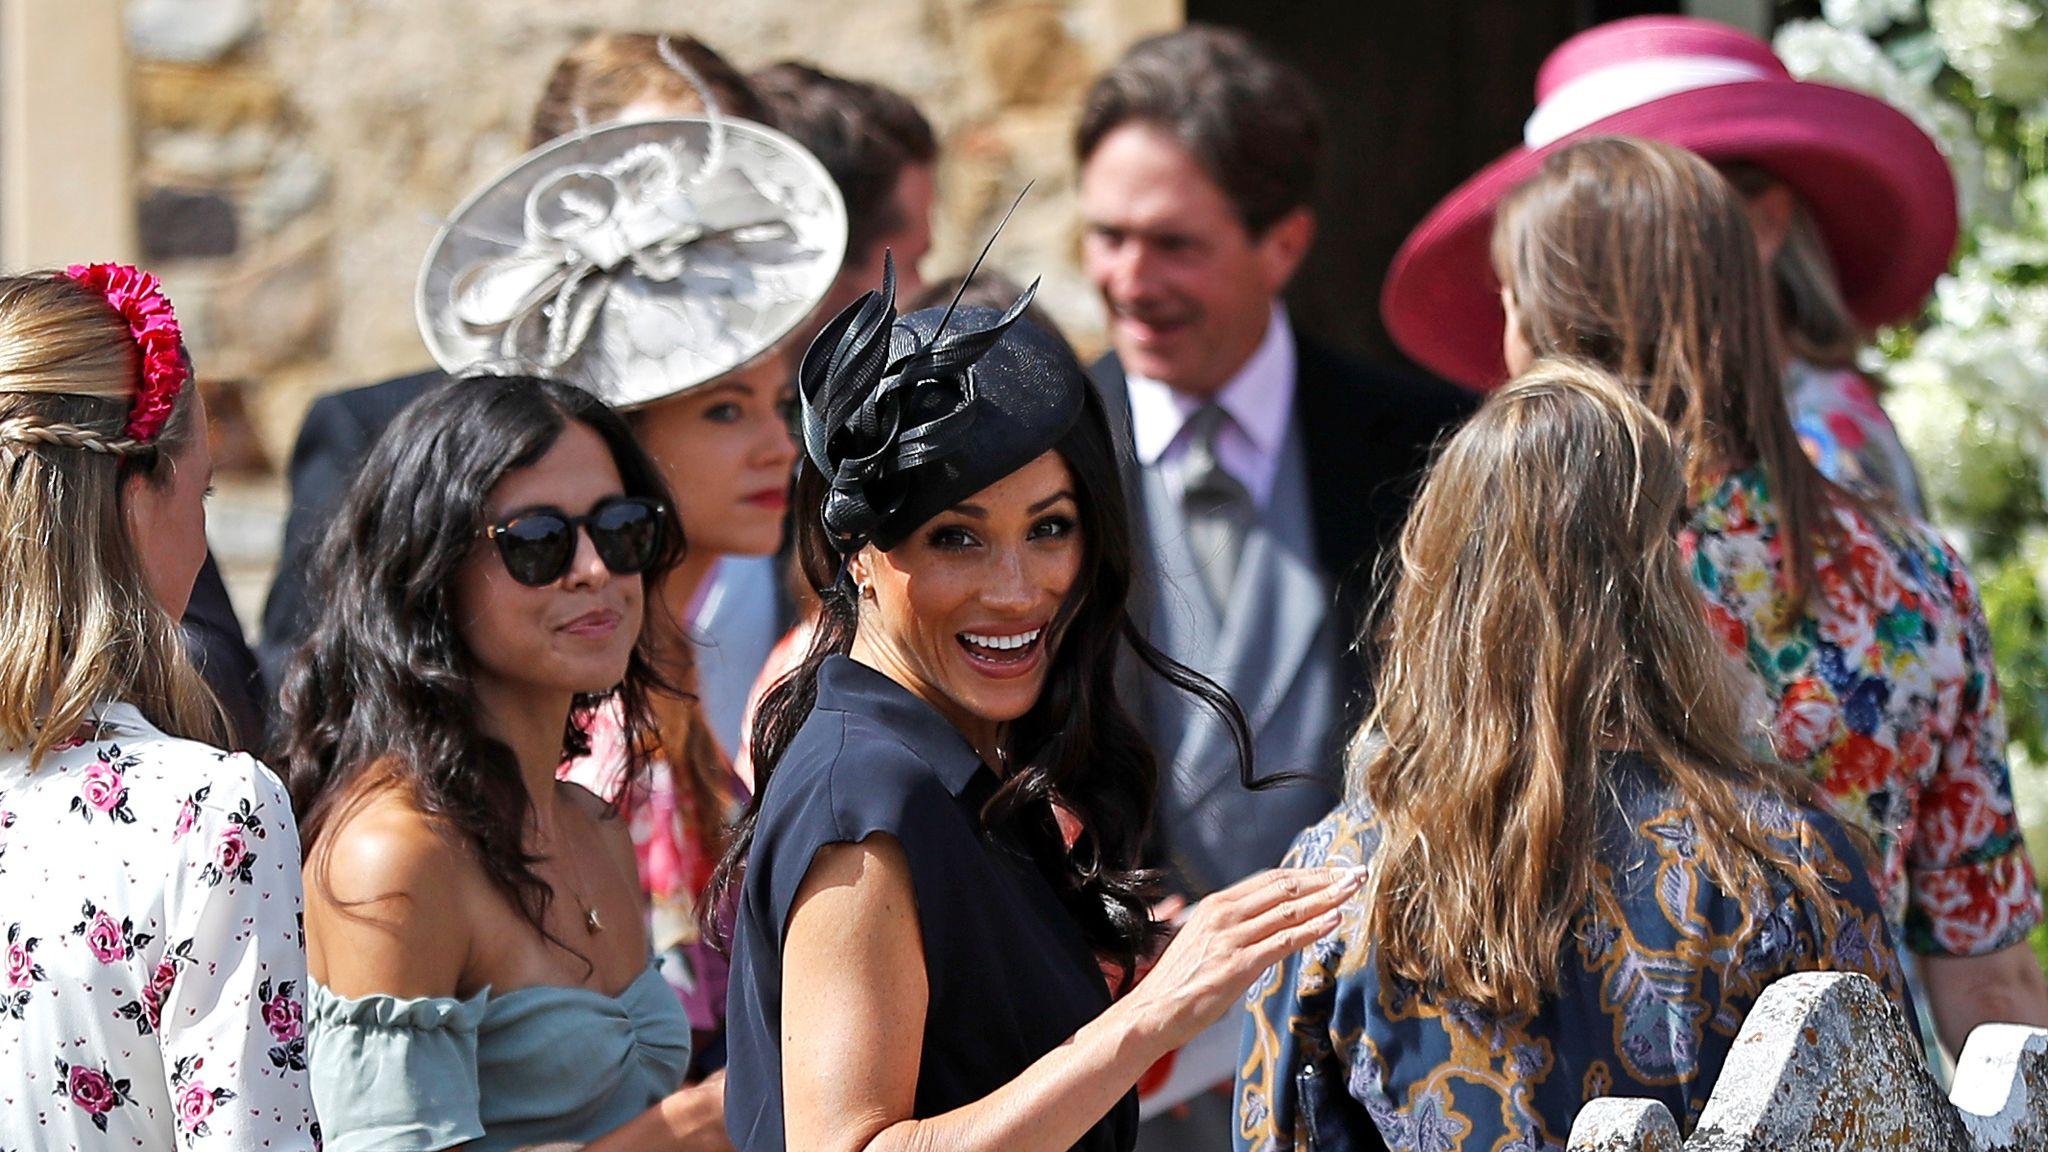 duchess of sussex spends 37th birthday at society wedding for prince harry s old friends uk news sky news duchess of sussex spends 37th birthday